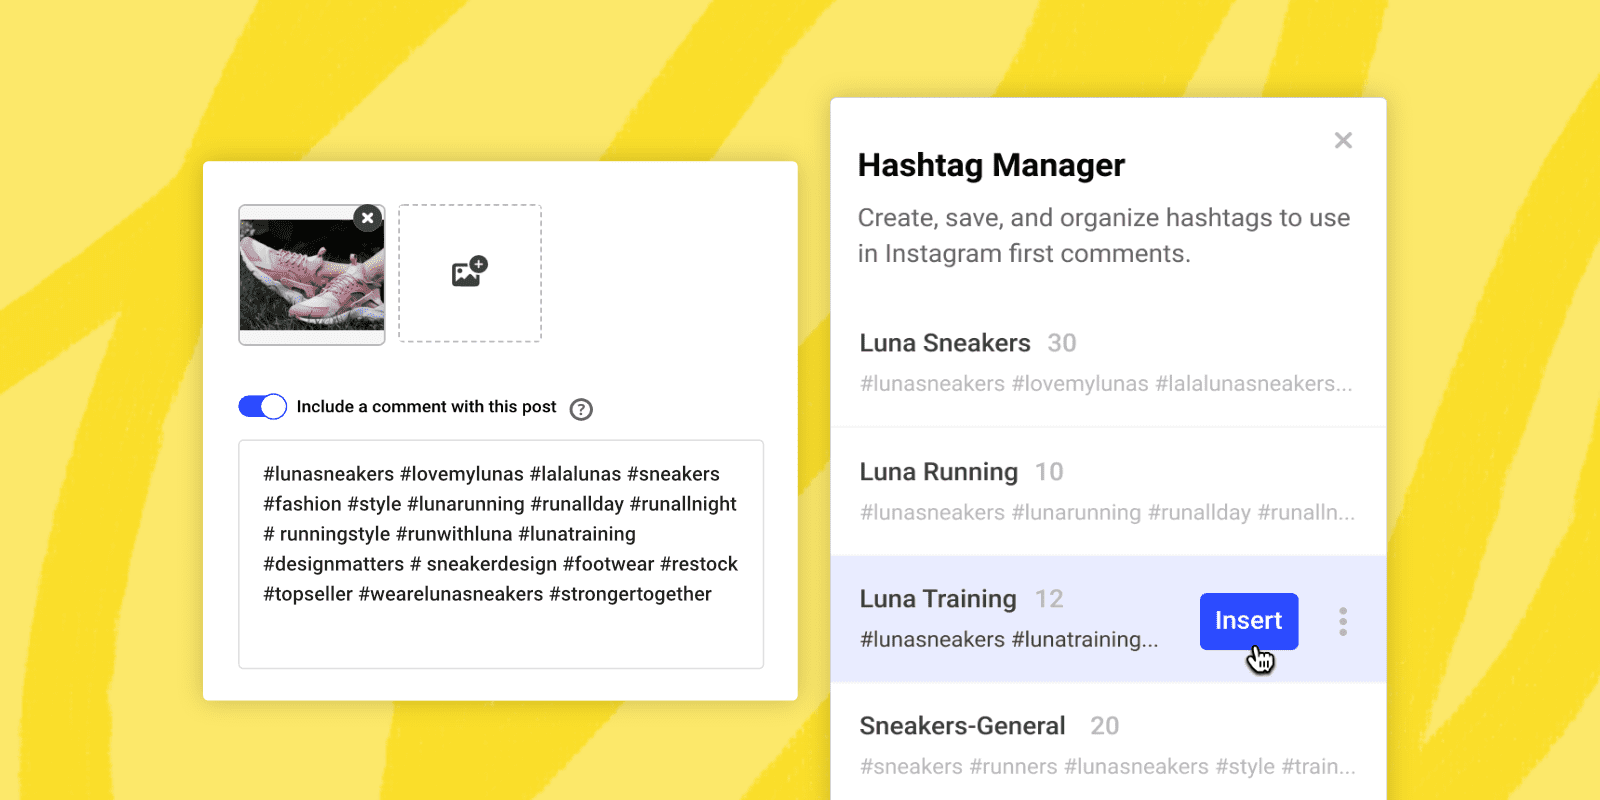 instagram hashtag analytics free tool to analyze instagram hashtags Announcing Hashtag Manager A New Tool To Help You Save And Organize Hashtags For Instagram